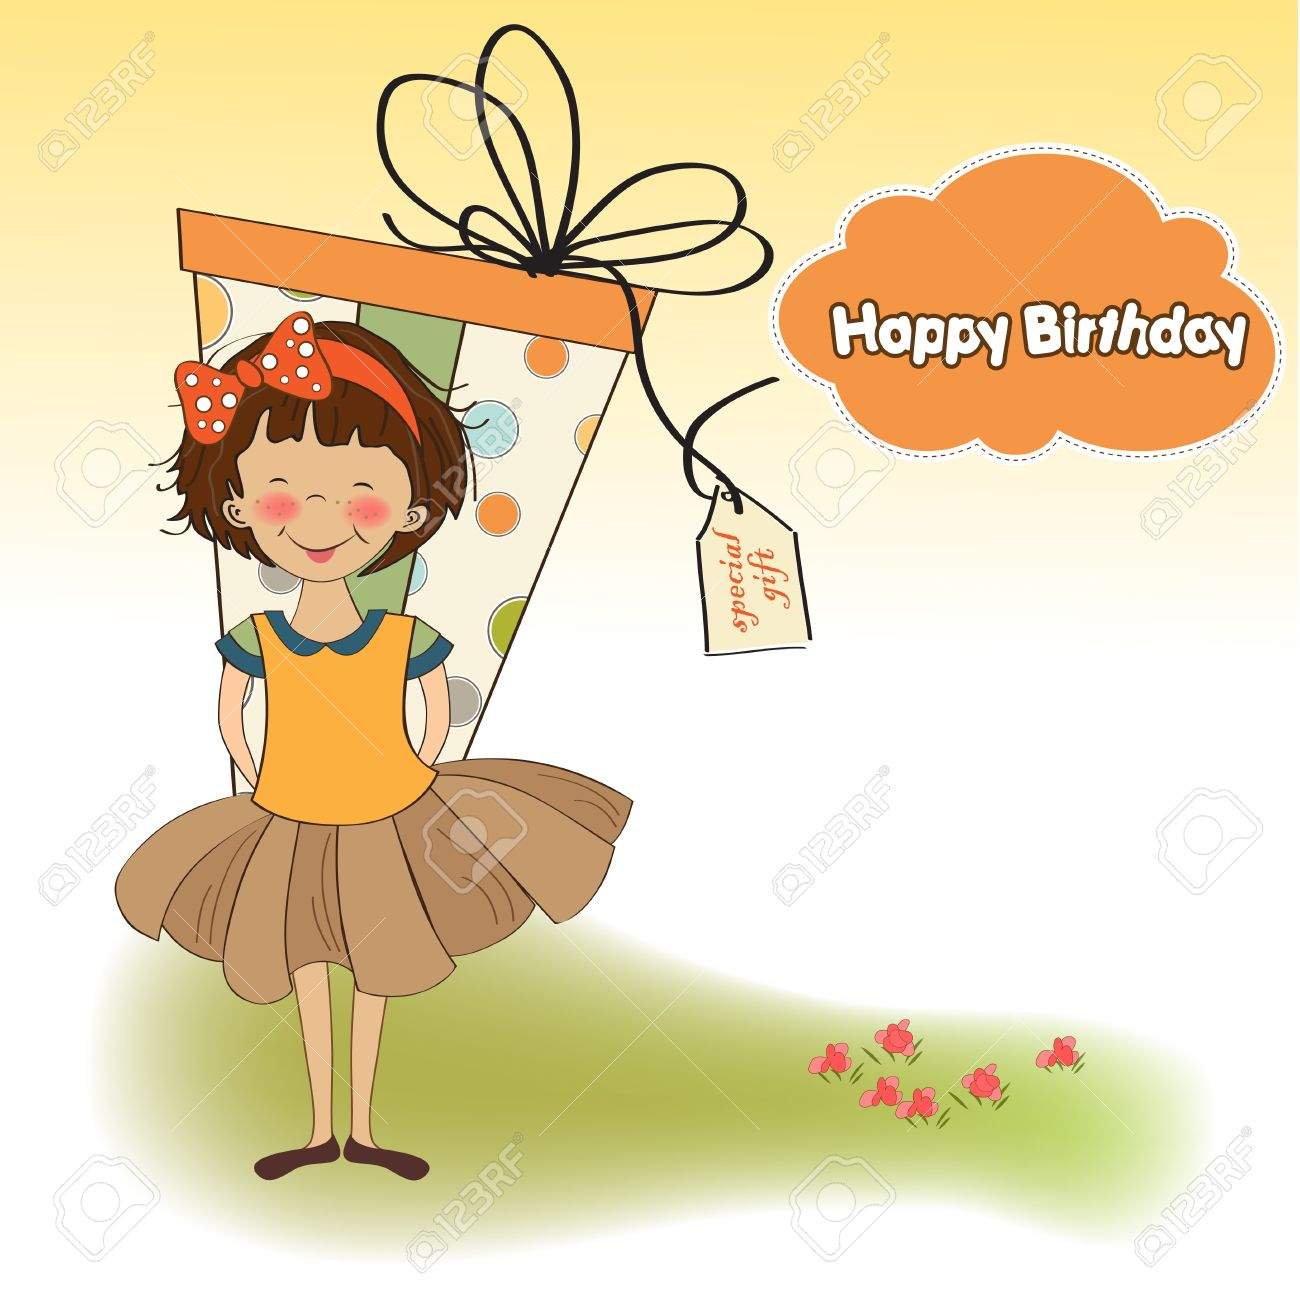 cute birthday greeting cards ; 11842084-cute-little-girl-hidden-behind-boxes-of-gifts-happy-birthday-greeting-card